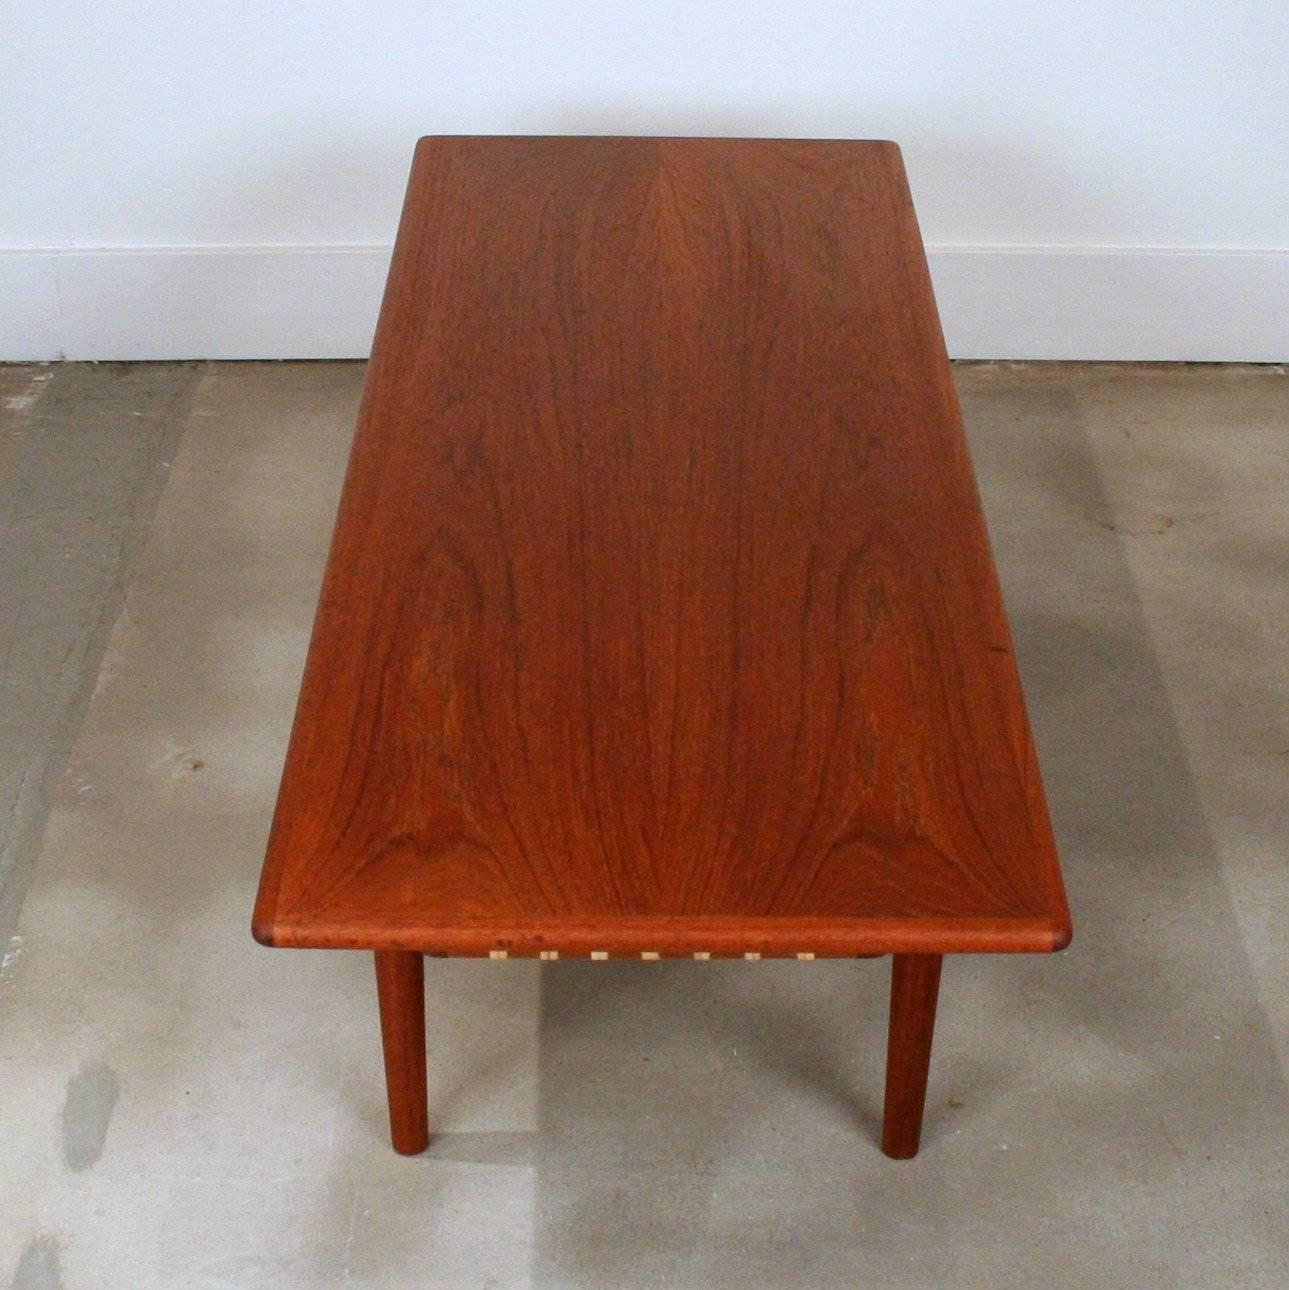 Antique Teak Coffee Table: Vintage Danish Teak Coffee Table With Cane Shelf For Sale